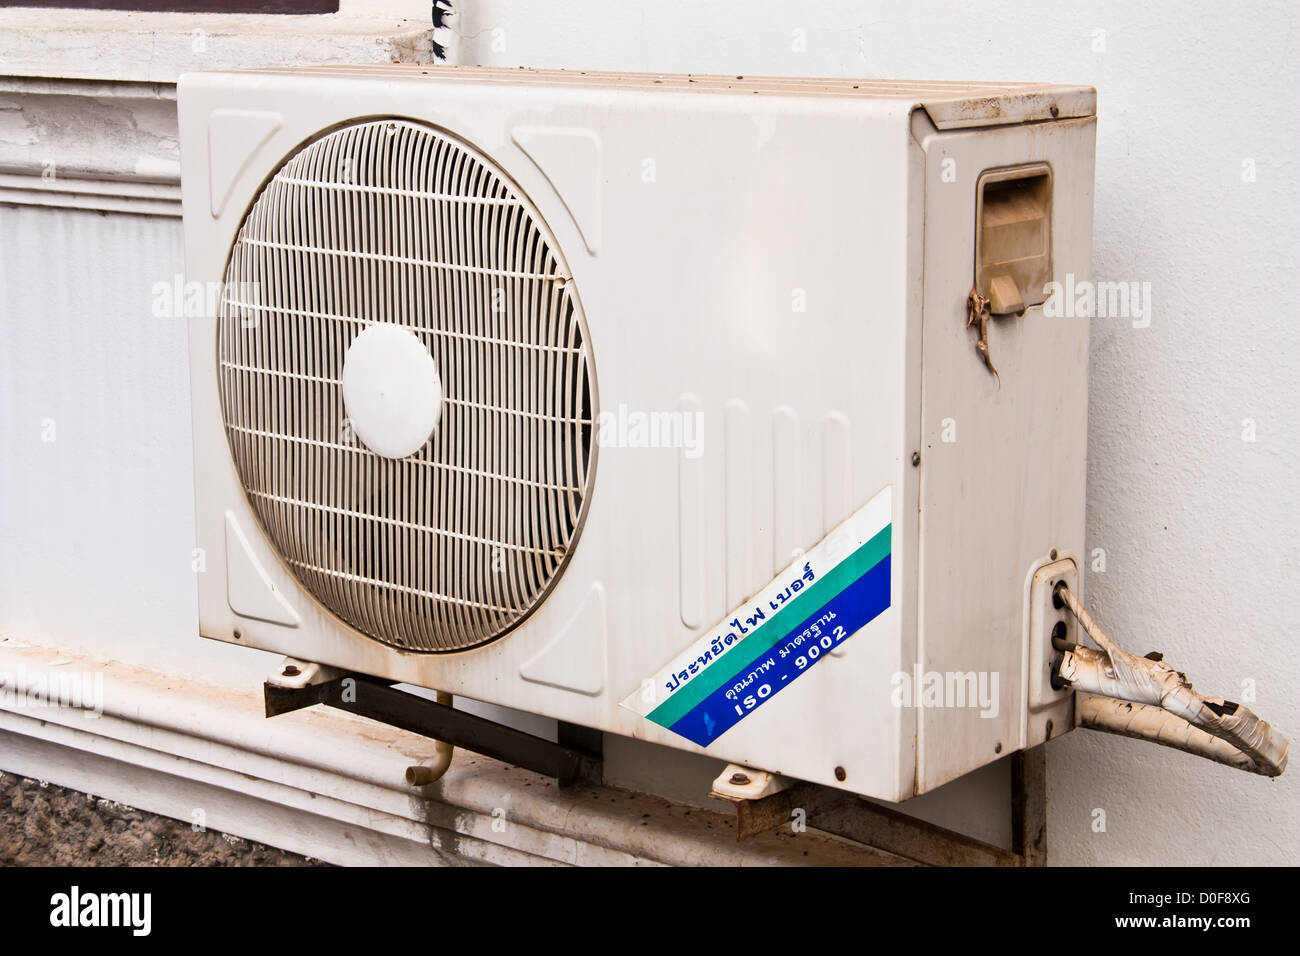 Air Conditioner Condenser Unit To Supply The Home Stock